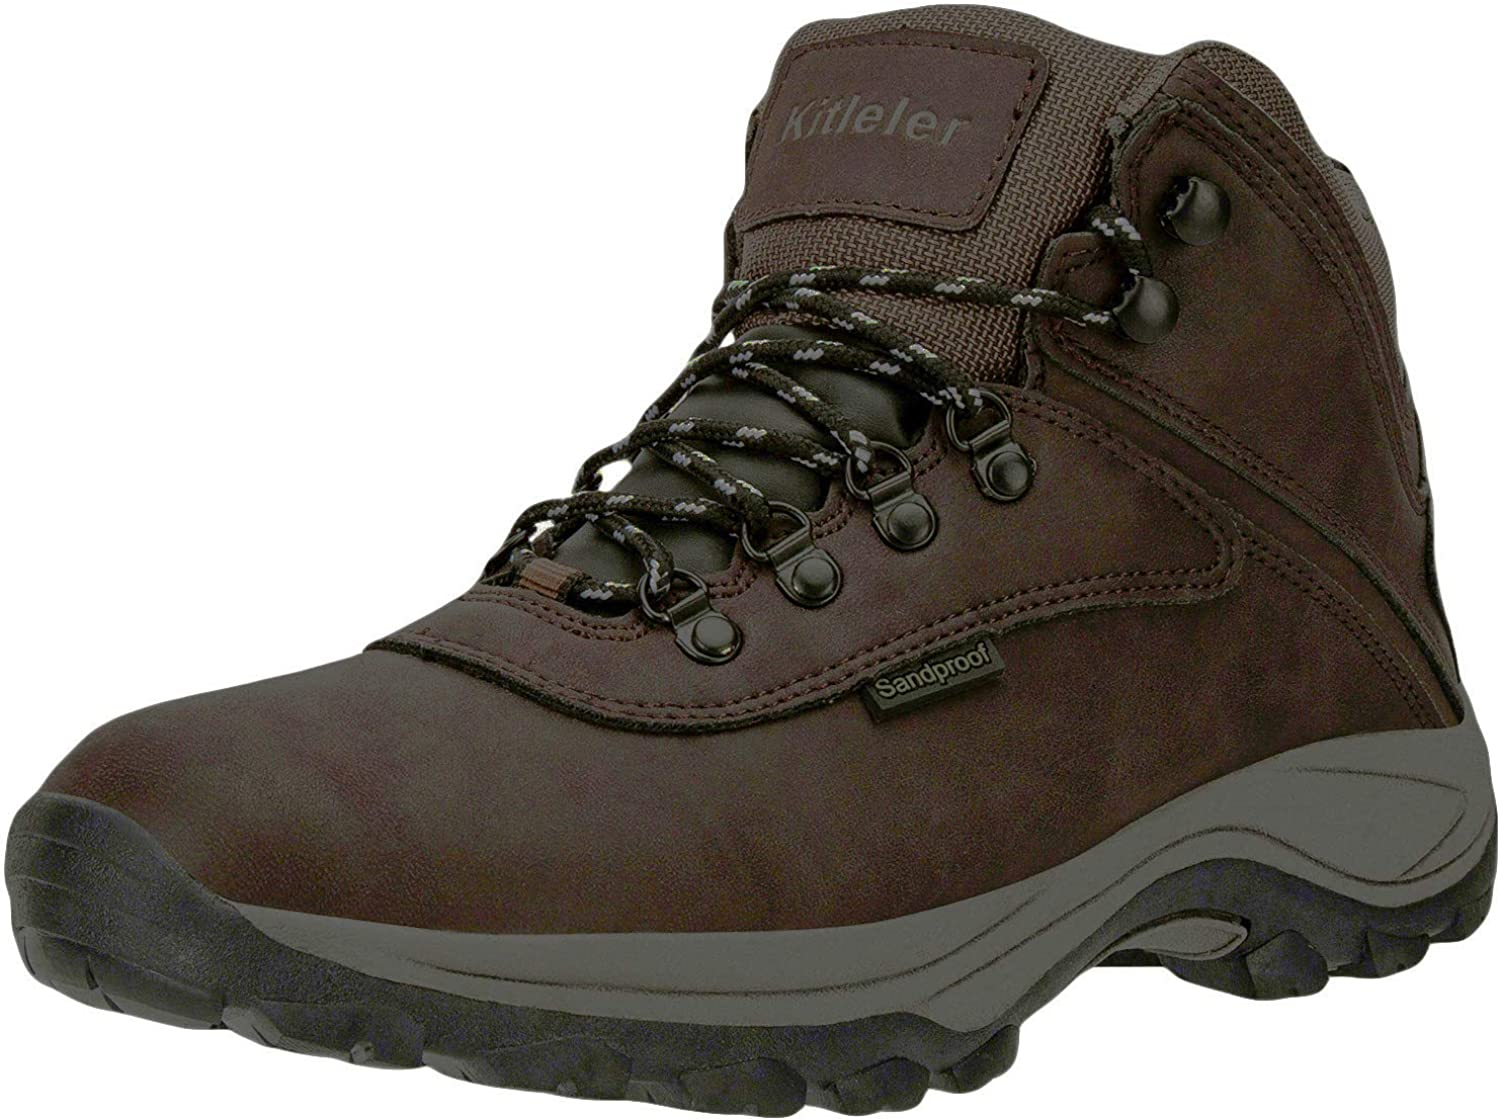 Hiking Boots For Work